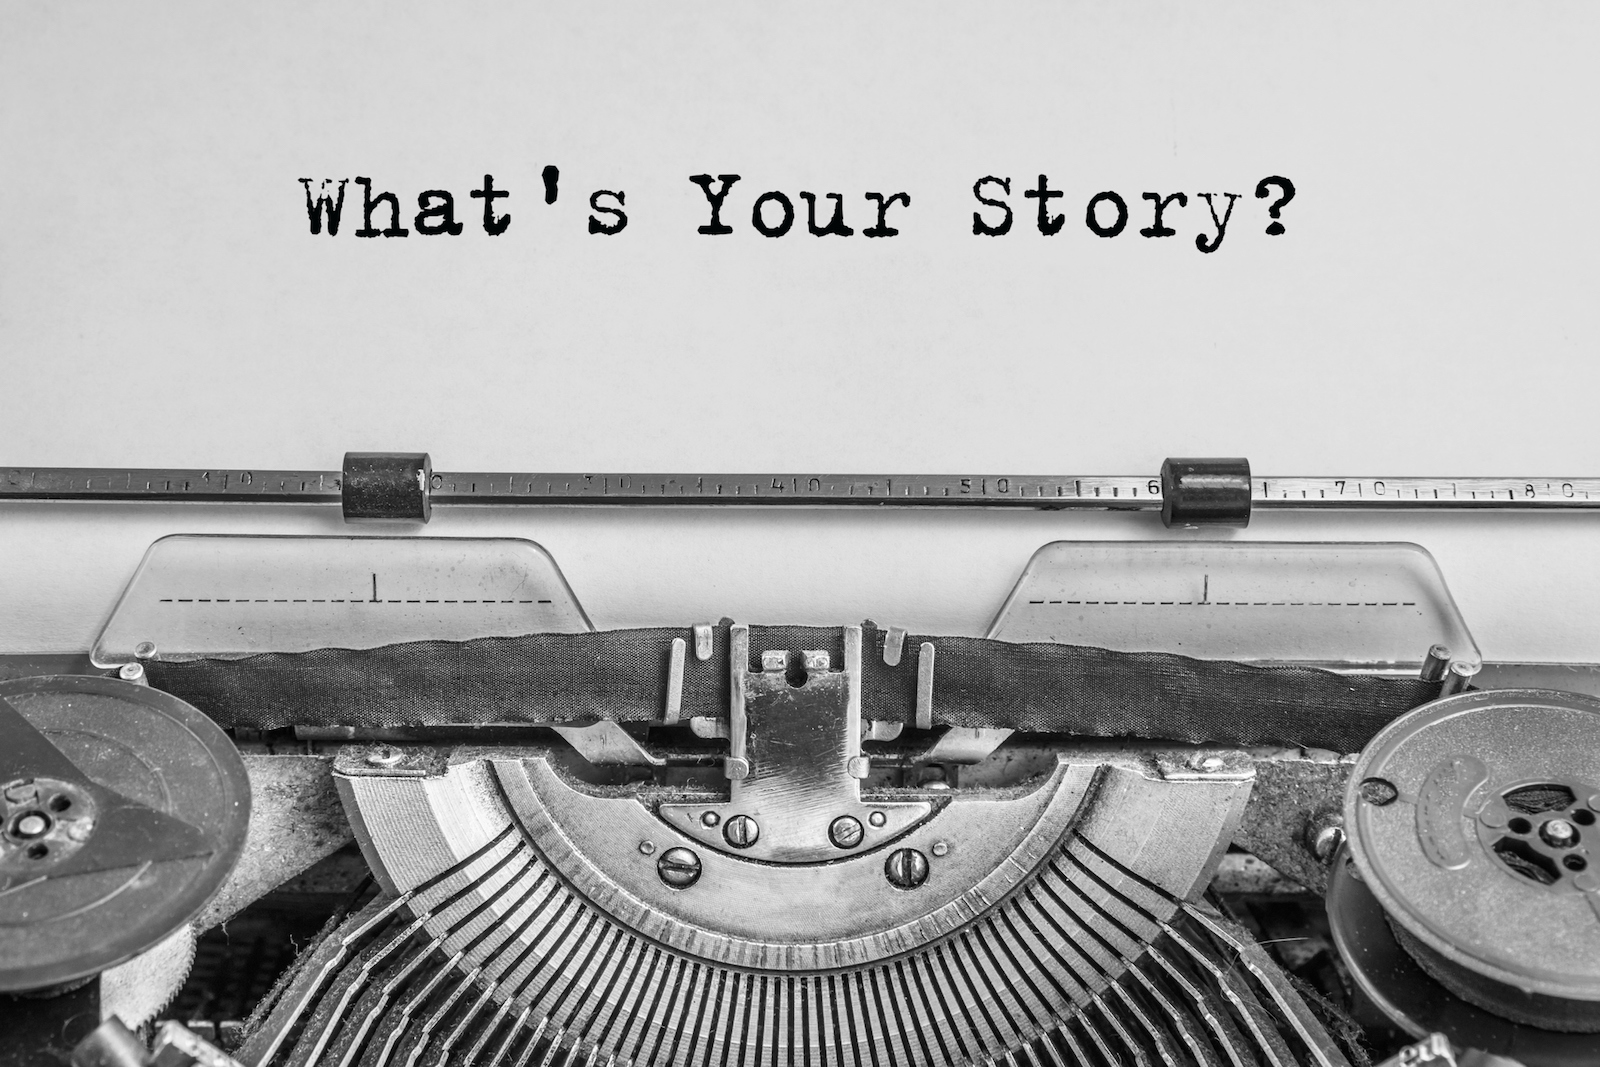 It's my blogaversary. Here's what I've learned about storytelling